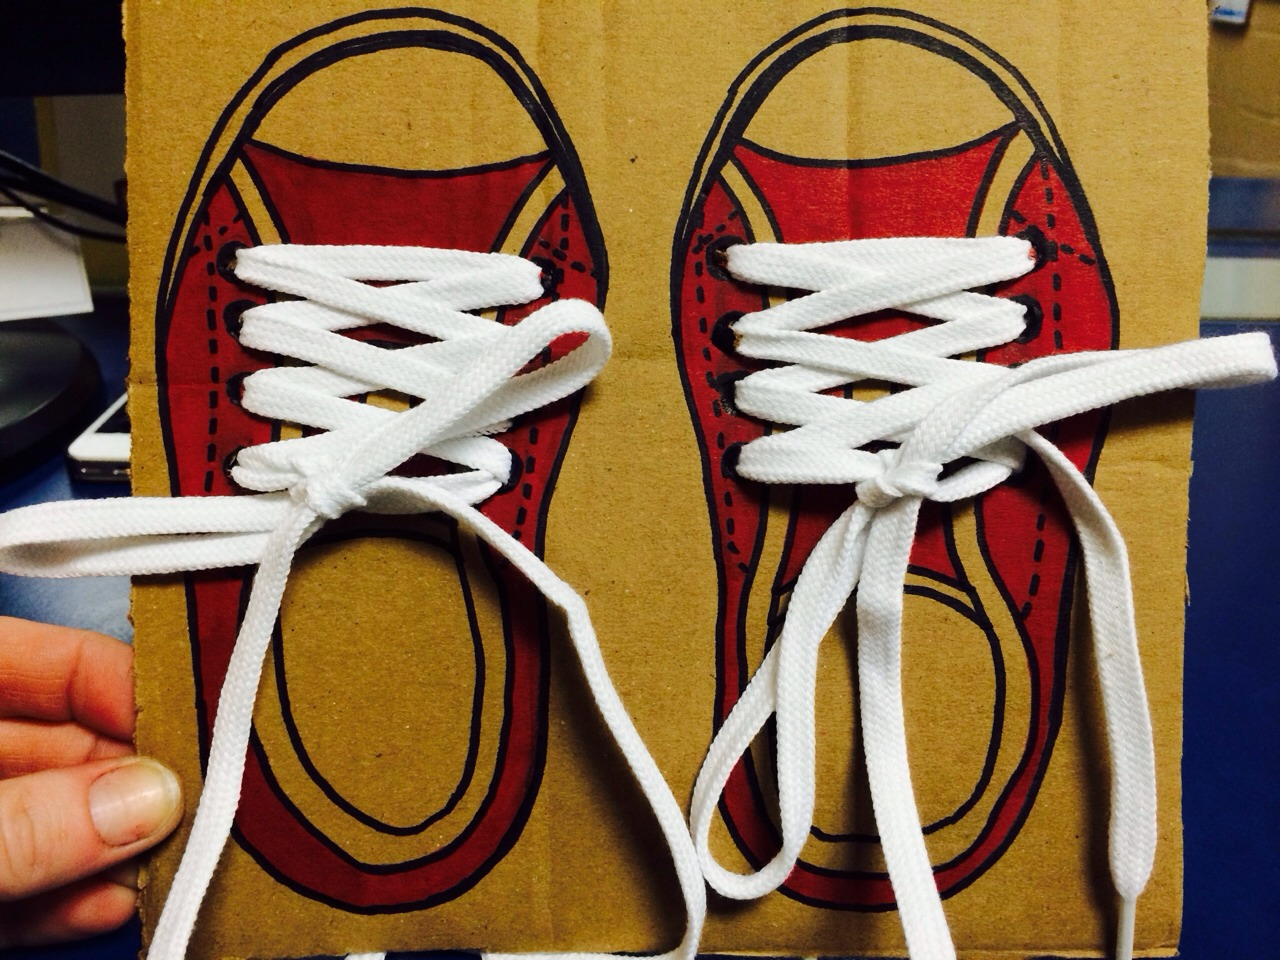 Cardboard, shoe laces and a sharpie.